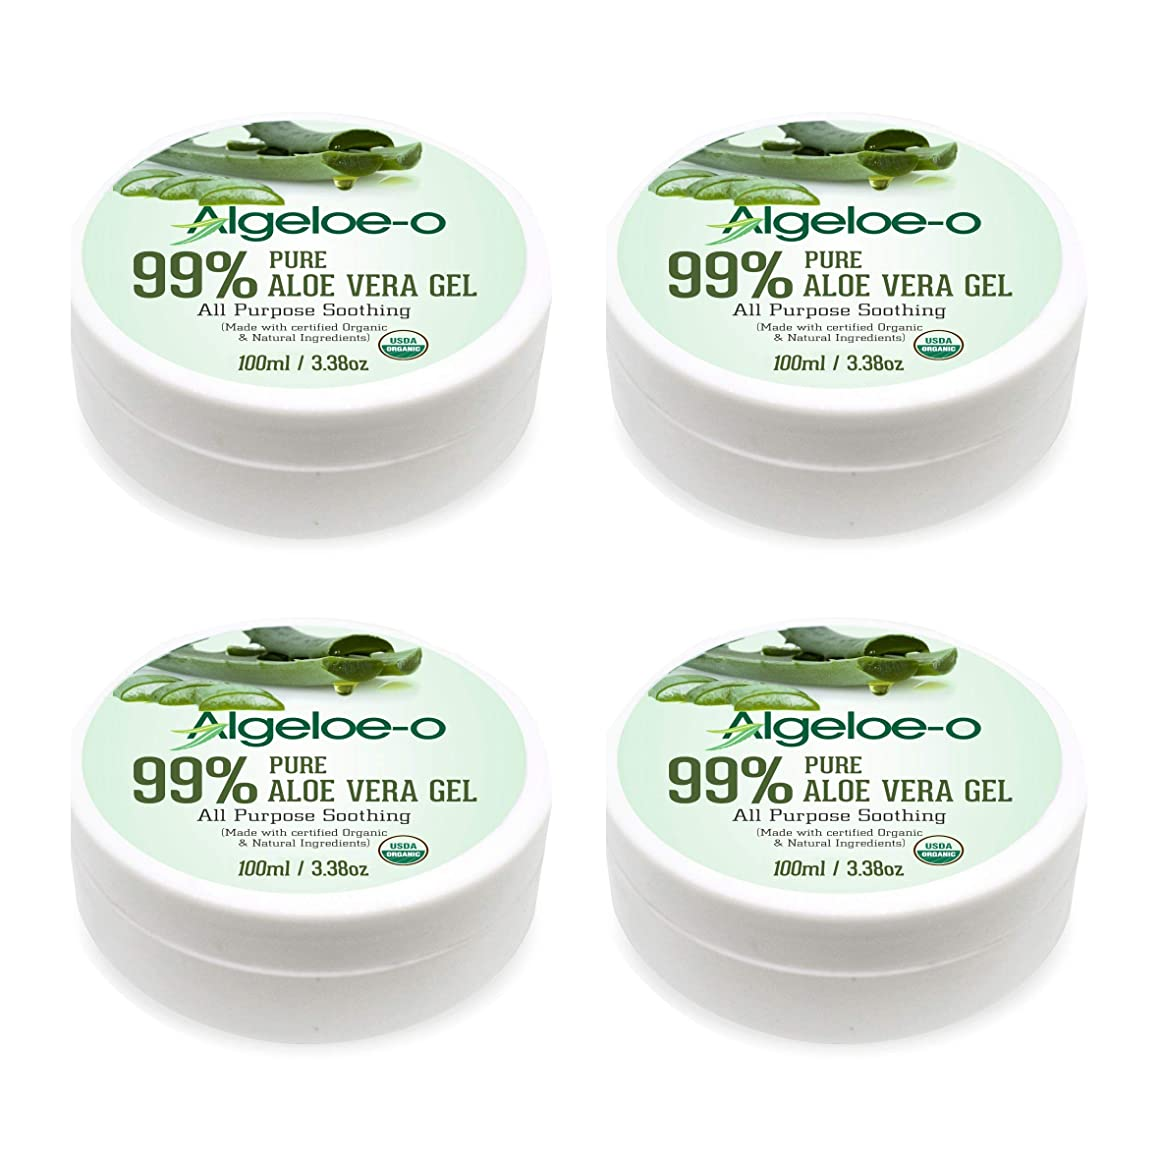 劇作家ドナー一貫したAlgeloe-O? Organic Aloe Vera Gel 99% Pure Natural made with USDA Certified Aloe Vera Powder Paraben, sulfate free with no added color 100ml/3.38oz. Pack Of 4